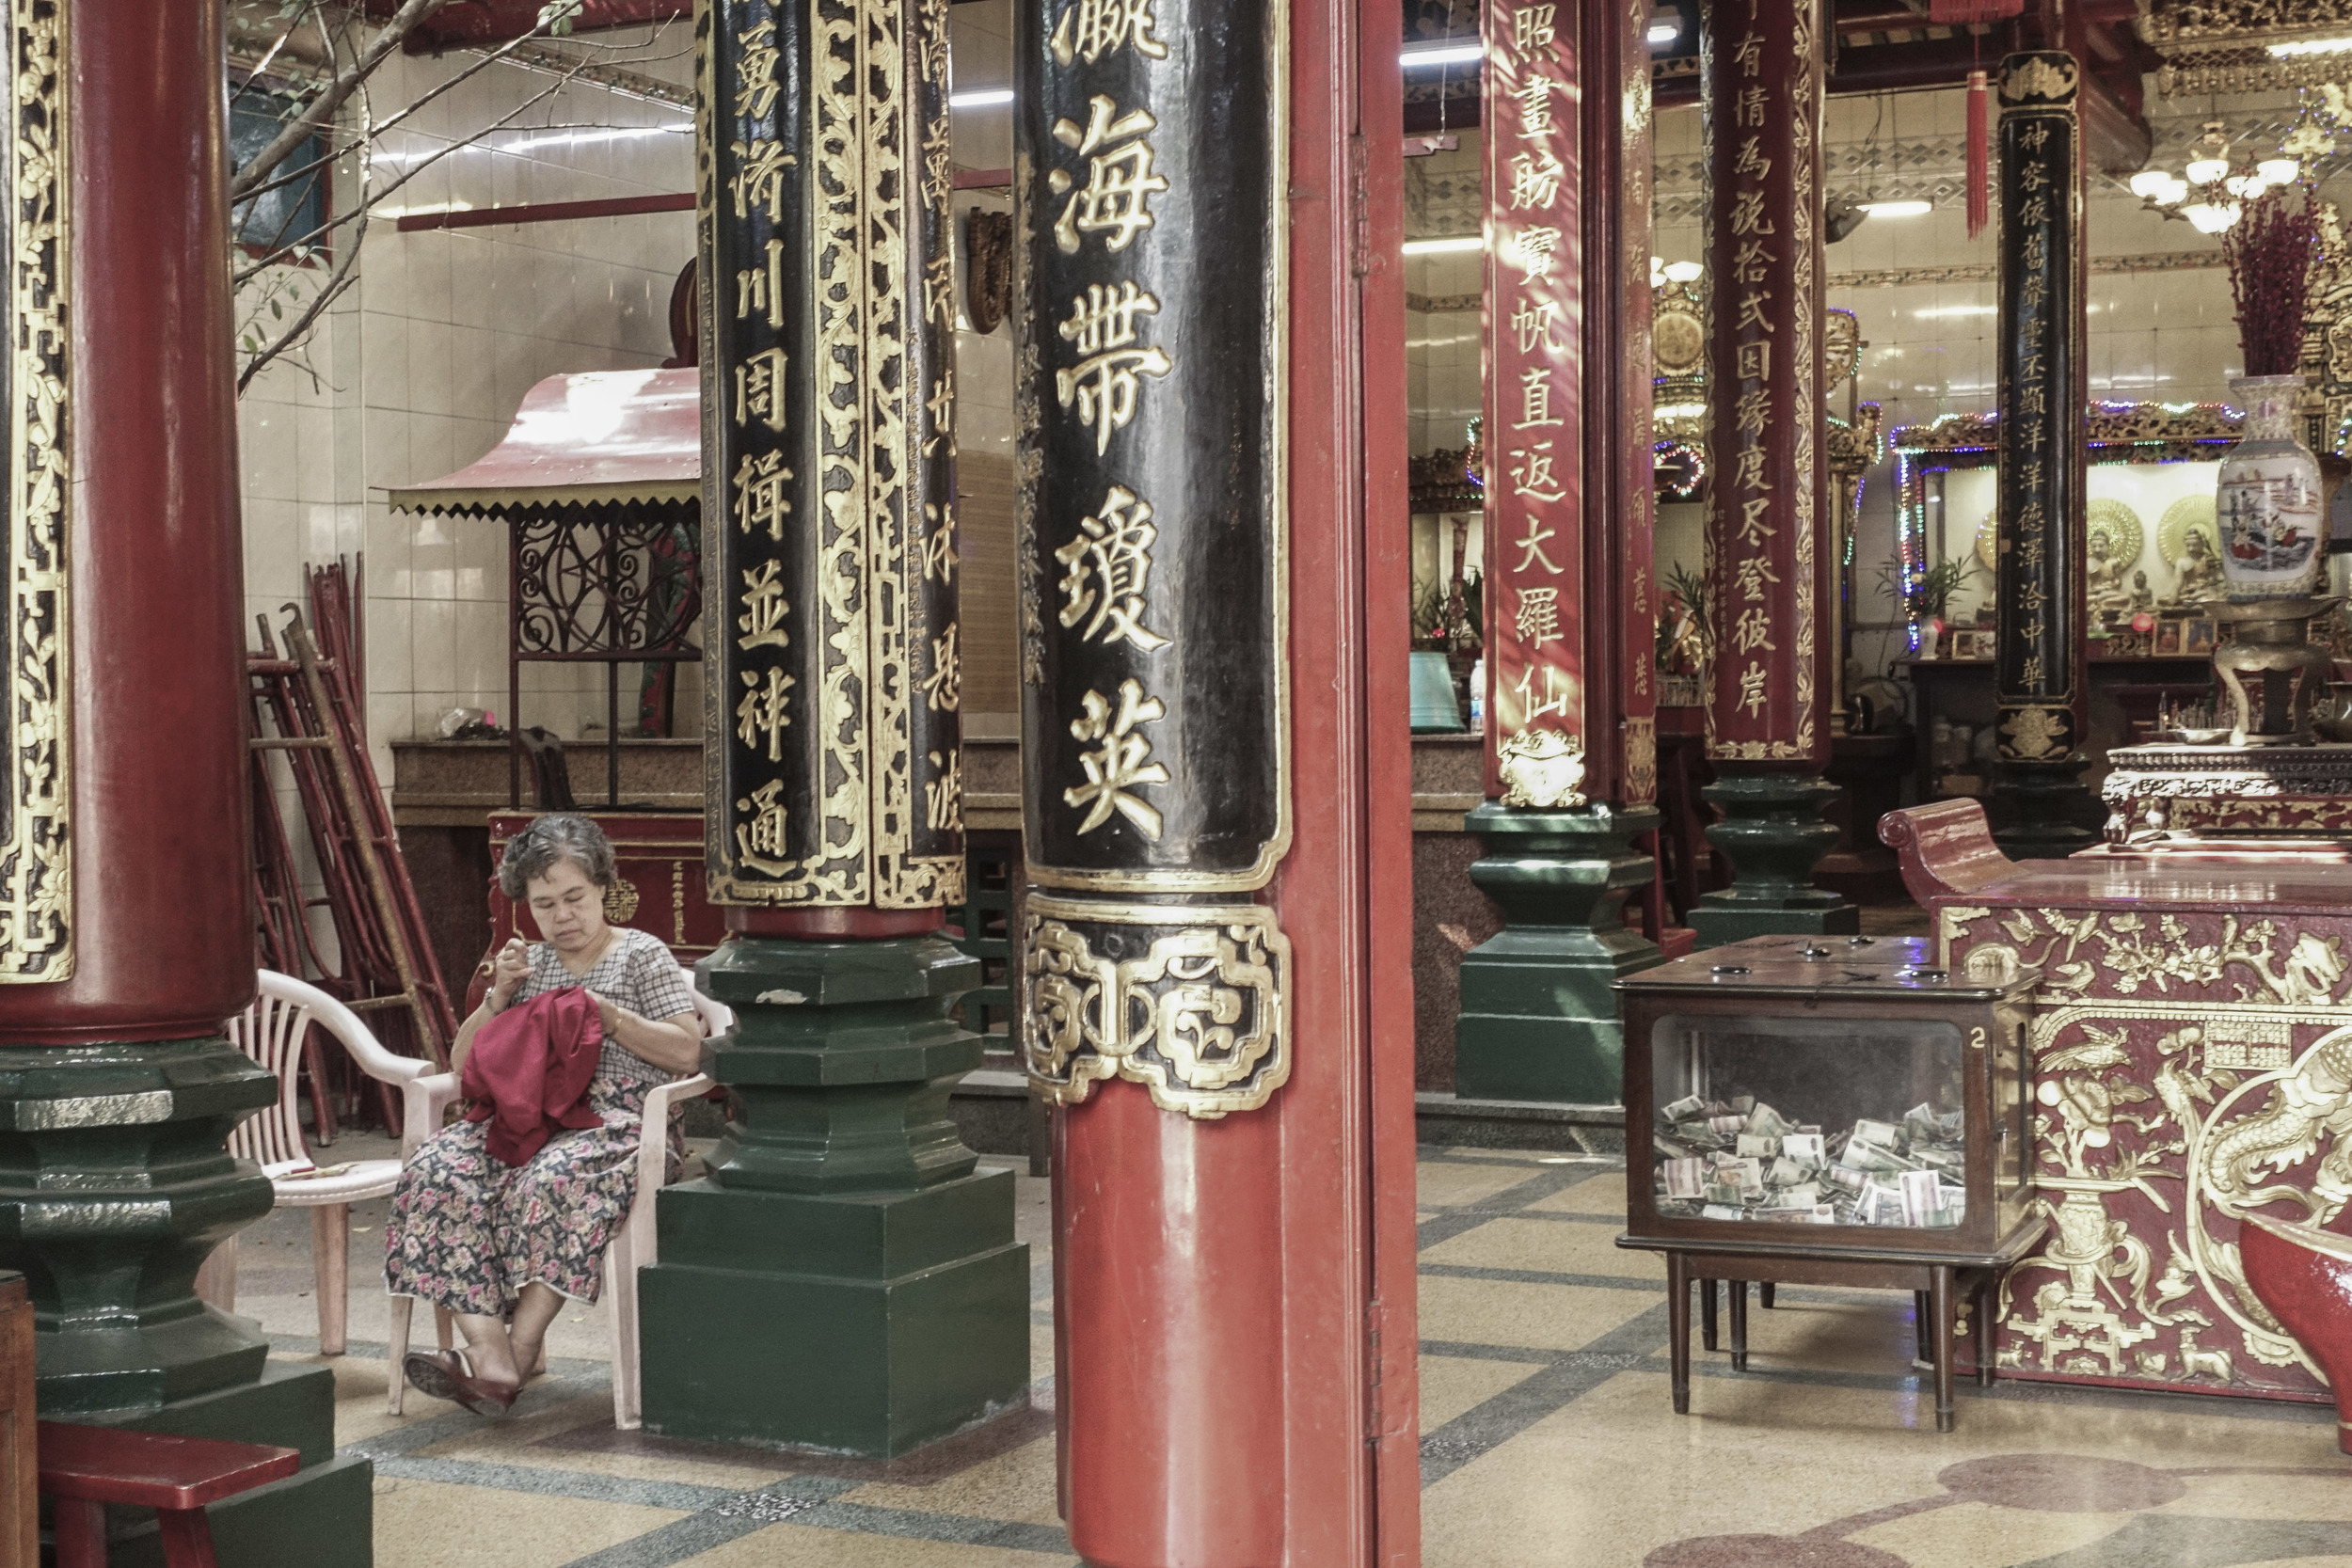 A woman finds a quiet place to knit at the Cantonese Guan Yin Temple beside 20th Street.